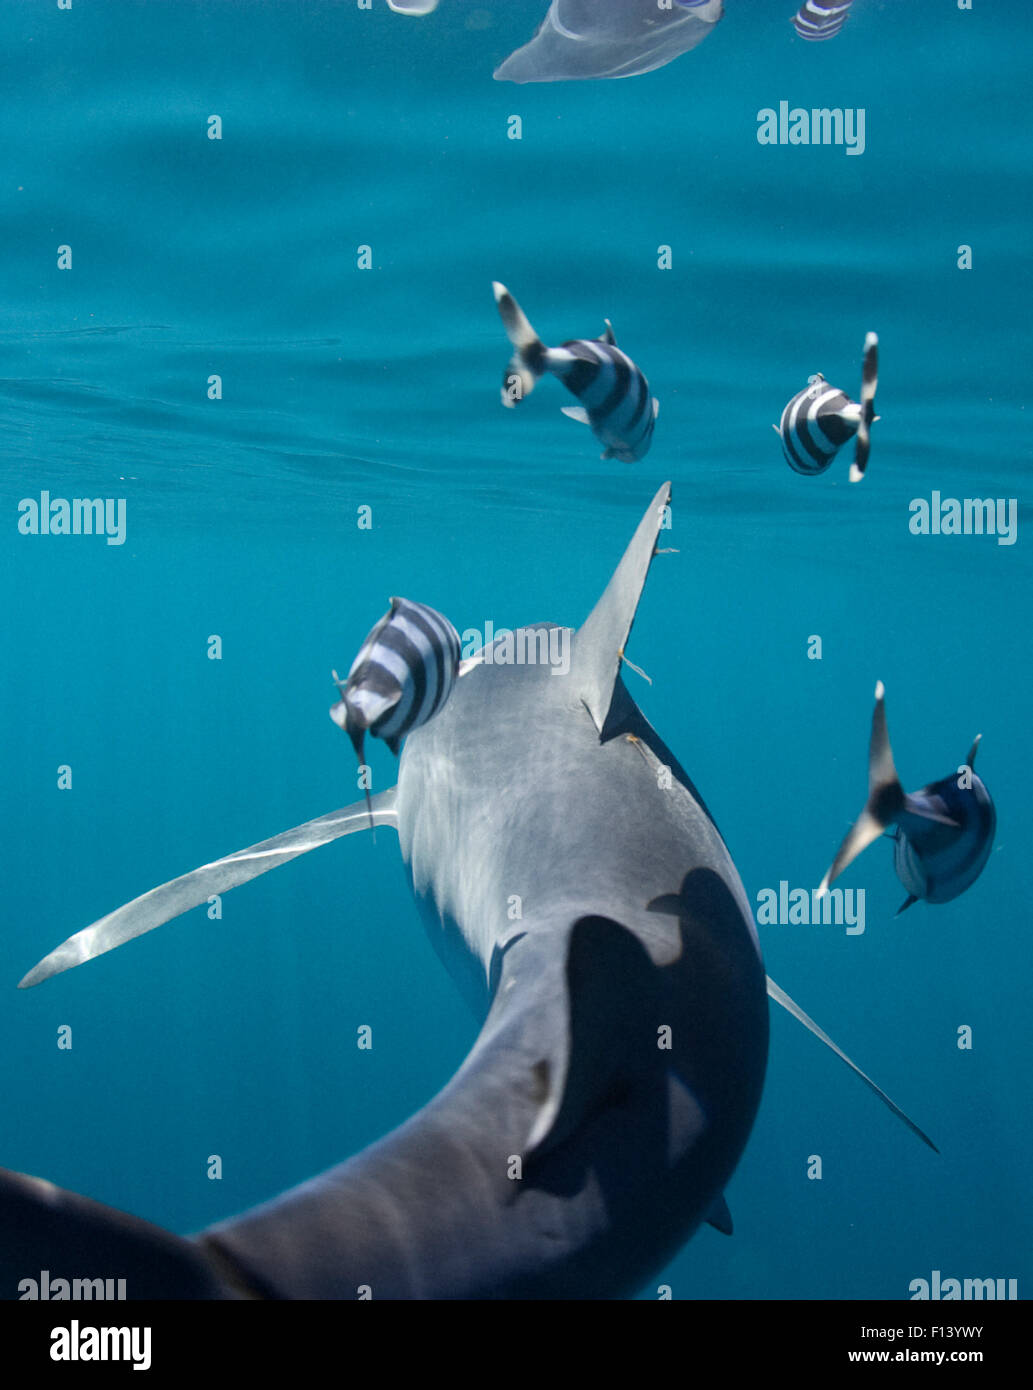 Blue shark (Prionace glauca), rear view with Pilot fish (Naucrates ductor) Cape Point, South Africa - Stock Image